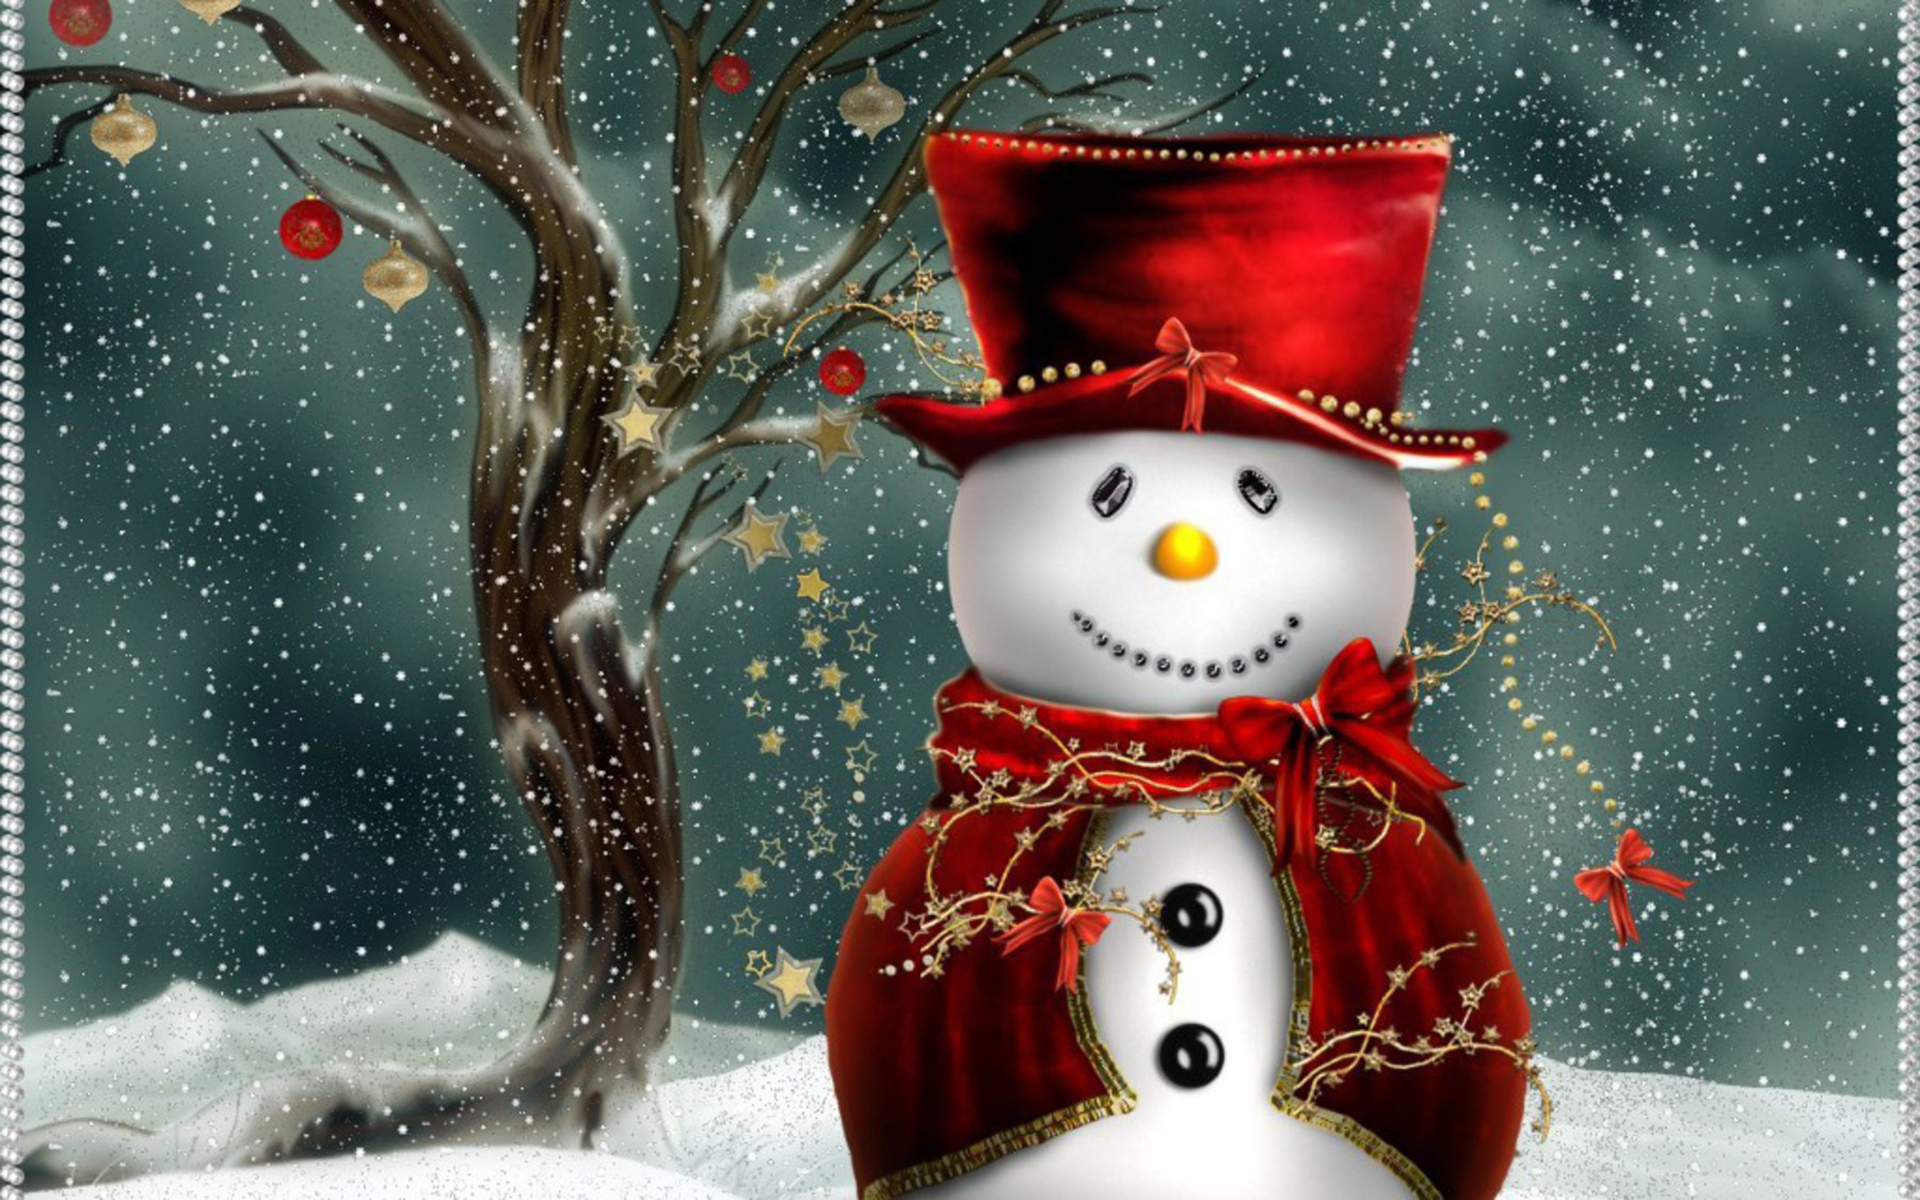 free desktop wallpaper of cute christmas snowman free computer desktop